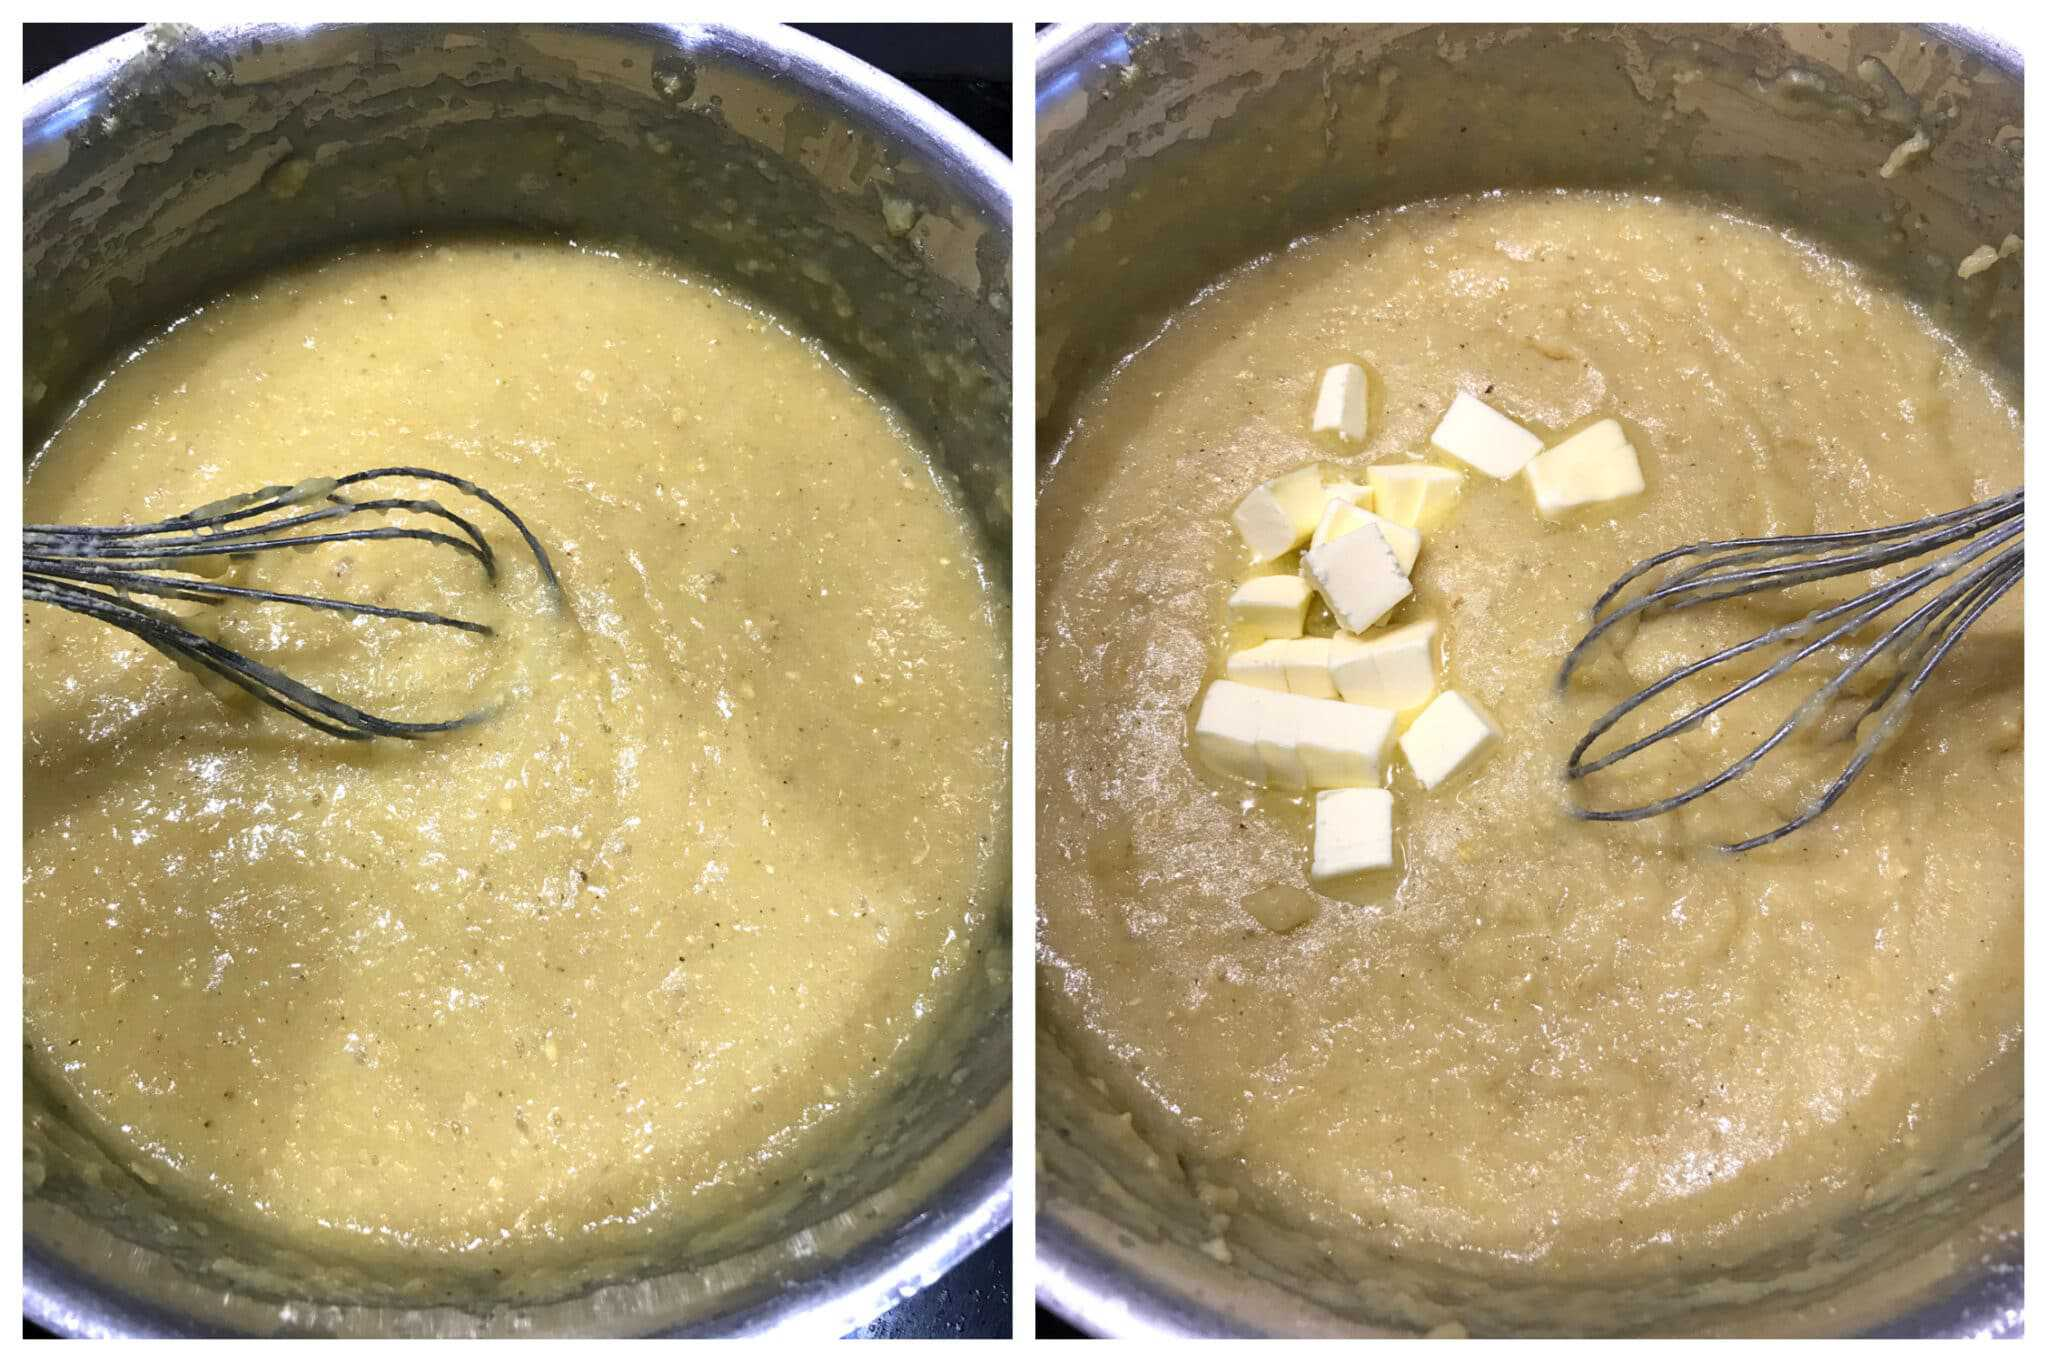 stirring the batter and adding butter